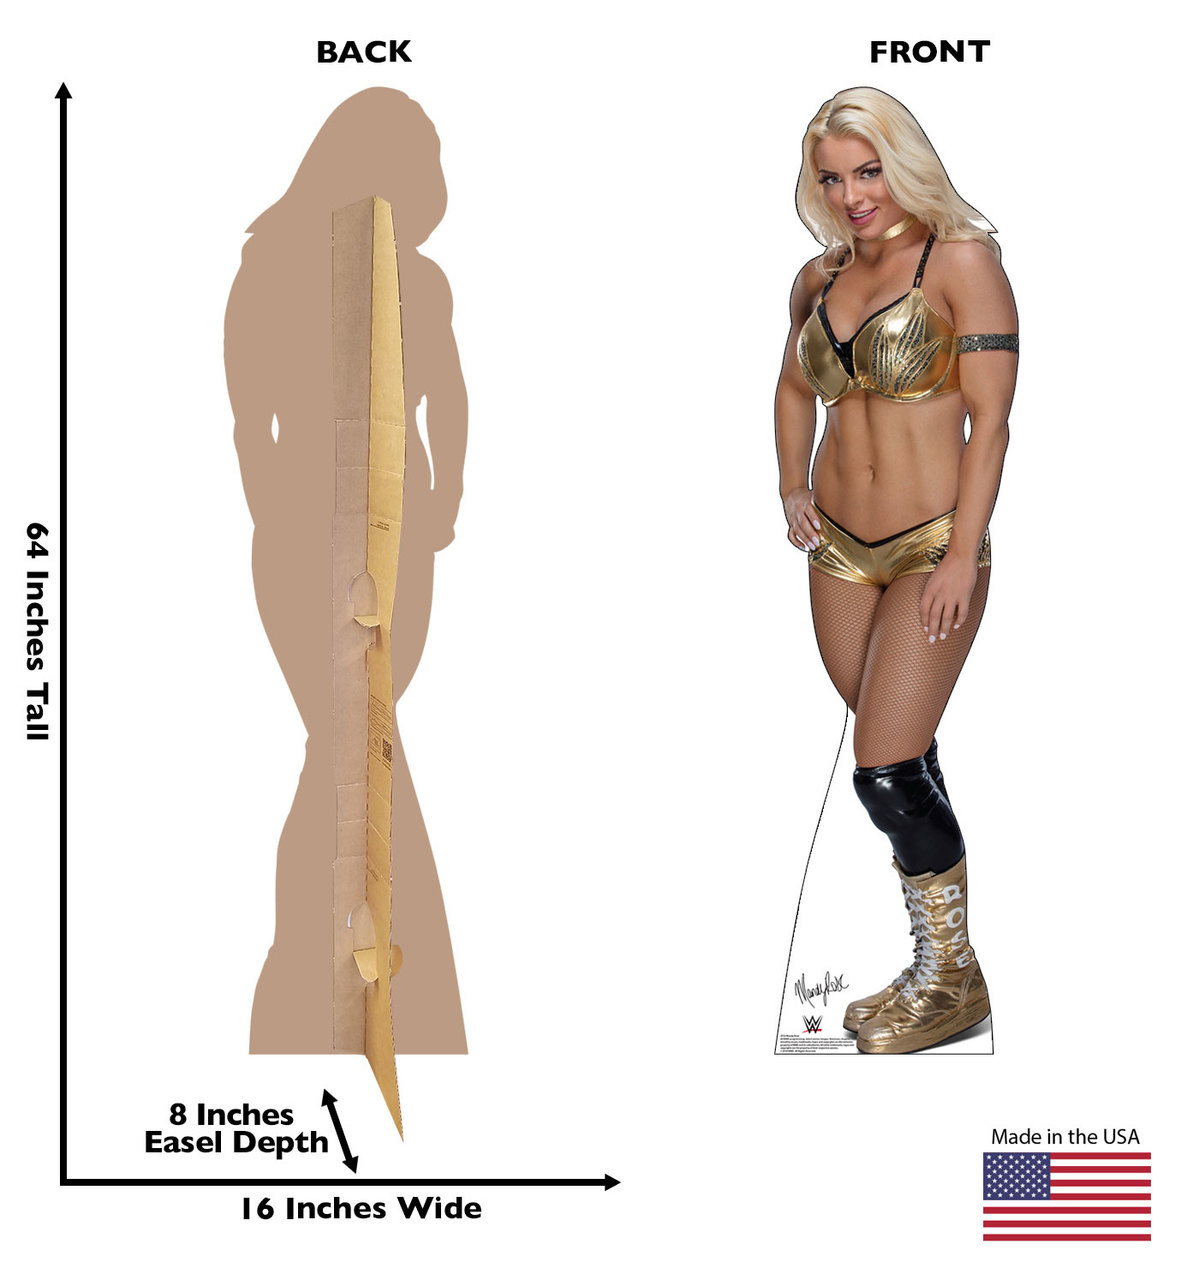 Mandy Rose Life-size cardboard standee front and back with dimensions.